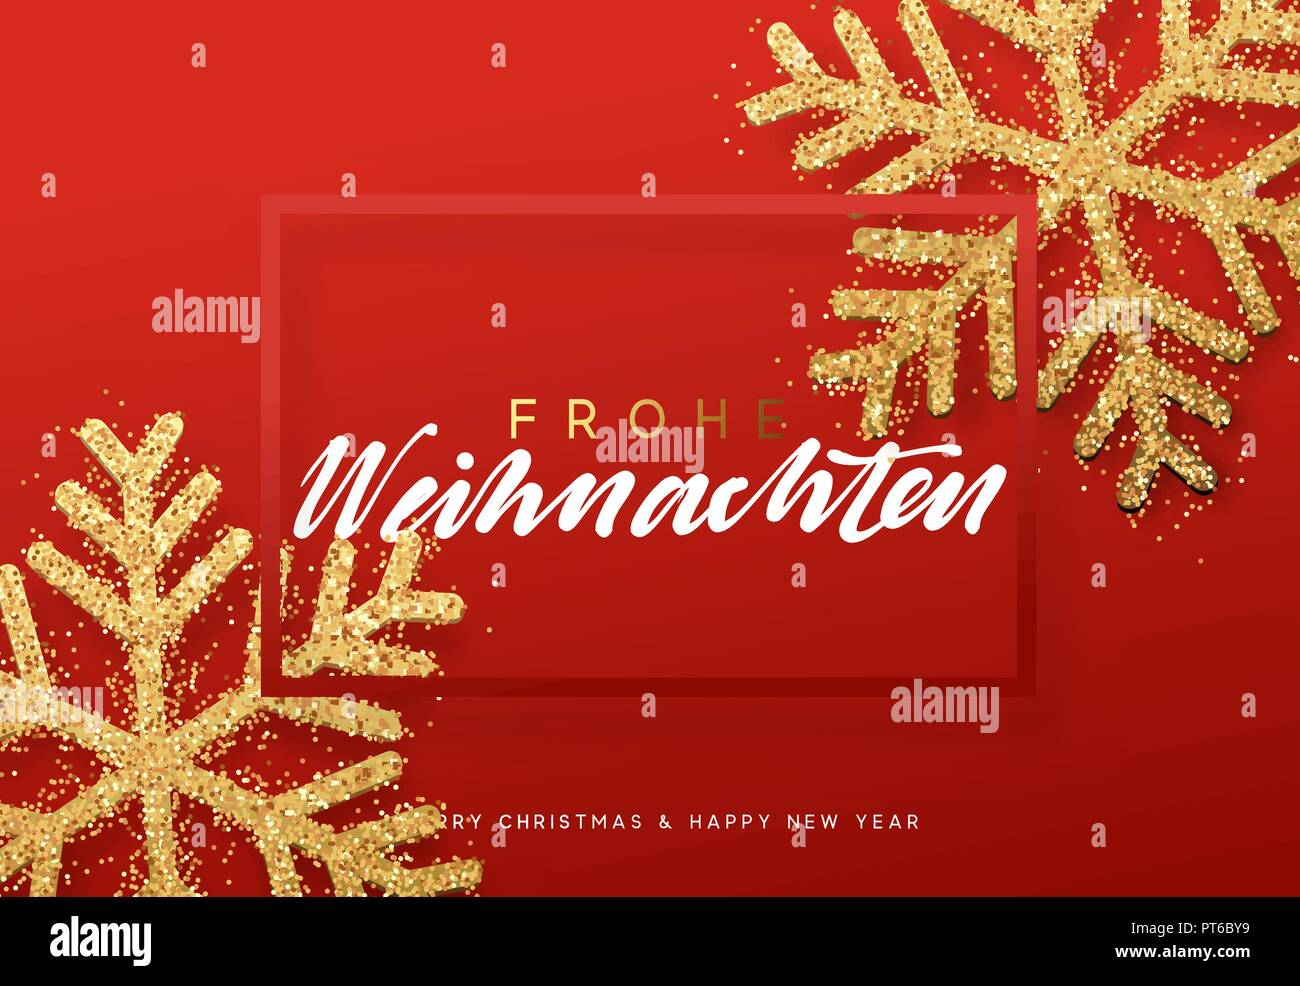 Frohe Weihnachten Xmas Background With Shining Golden